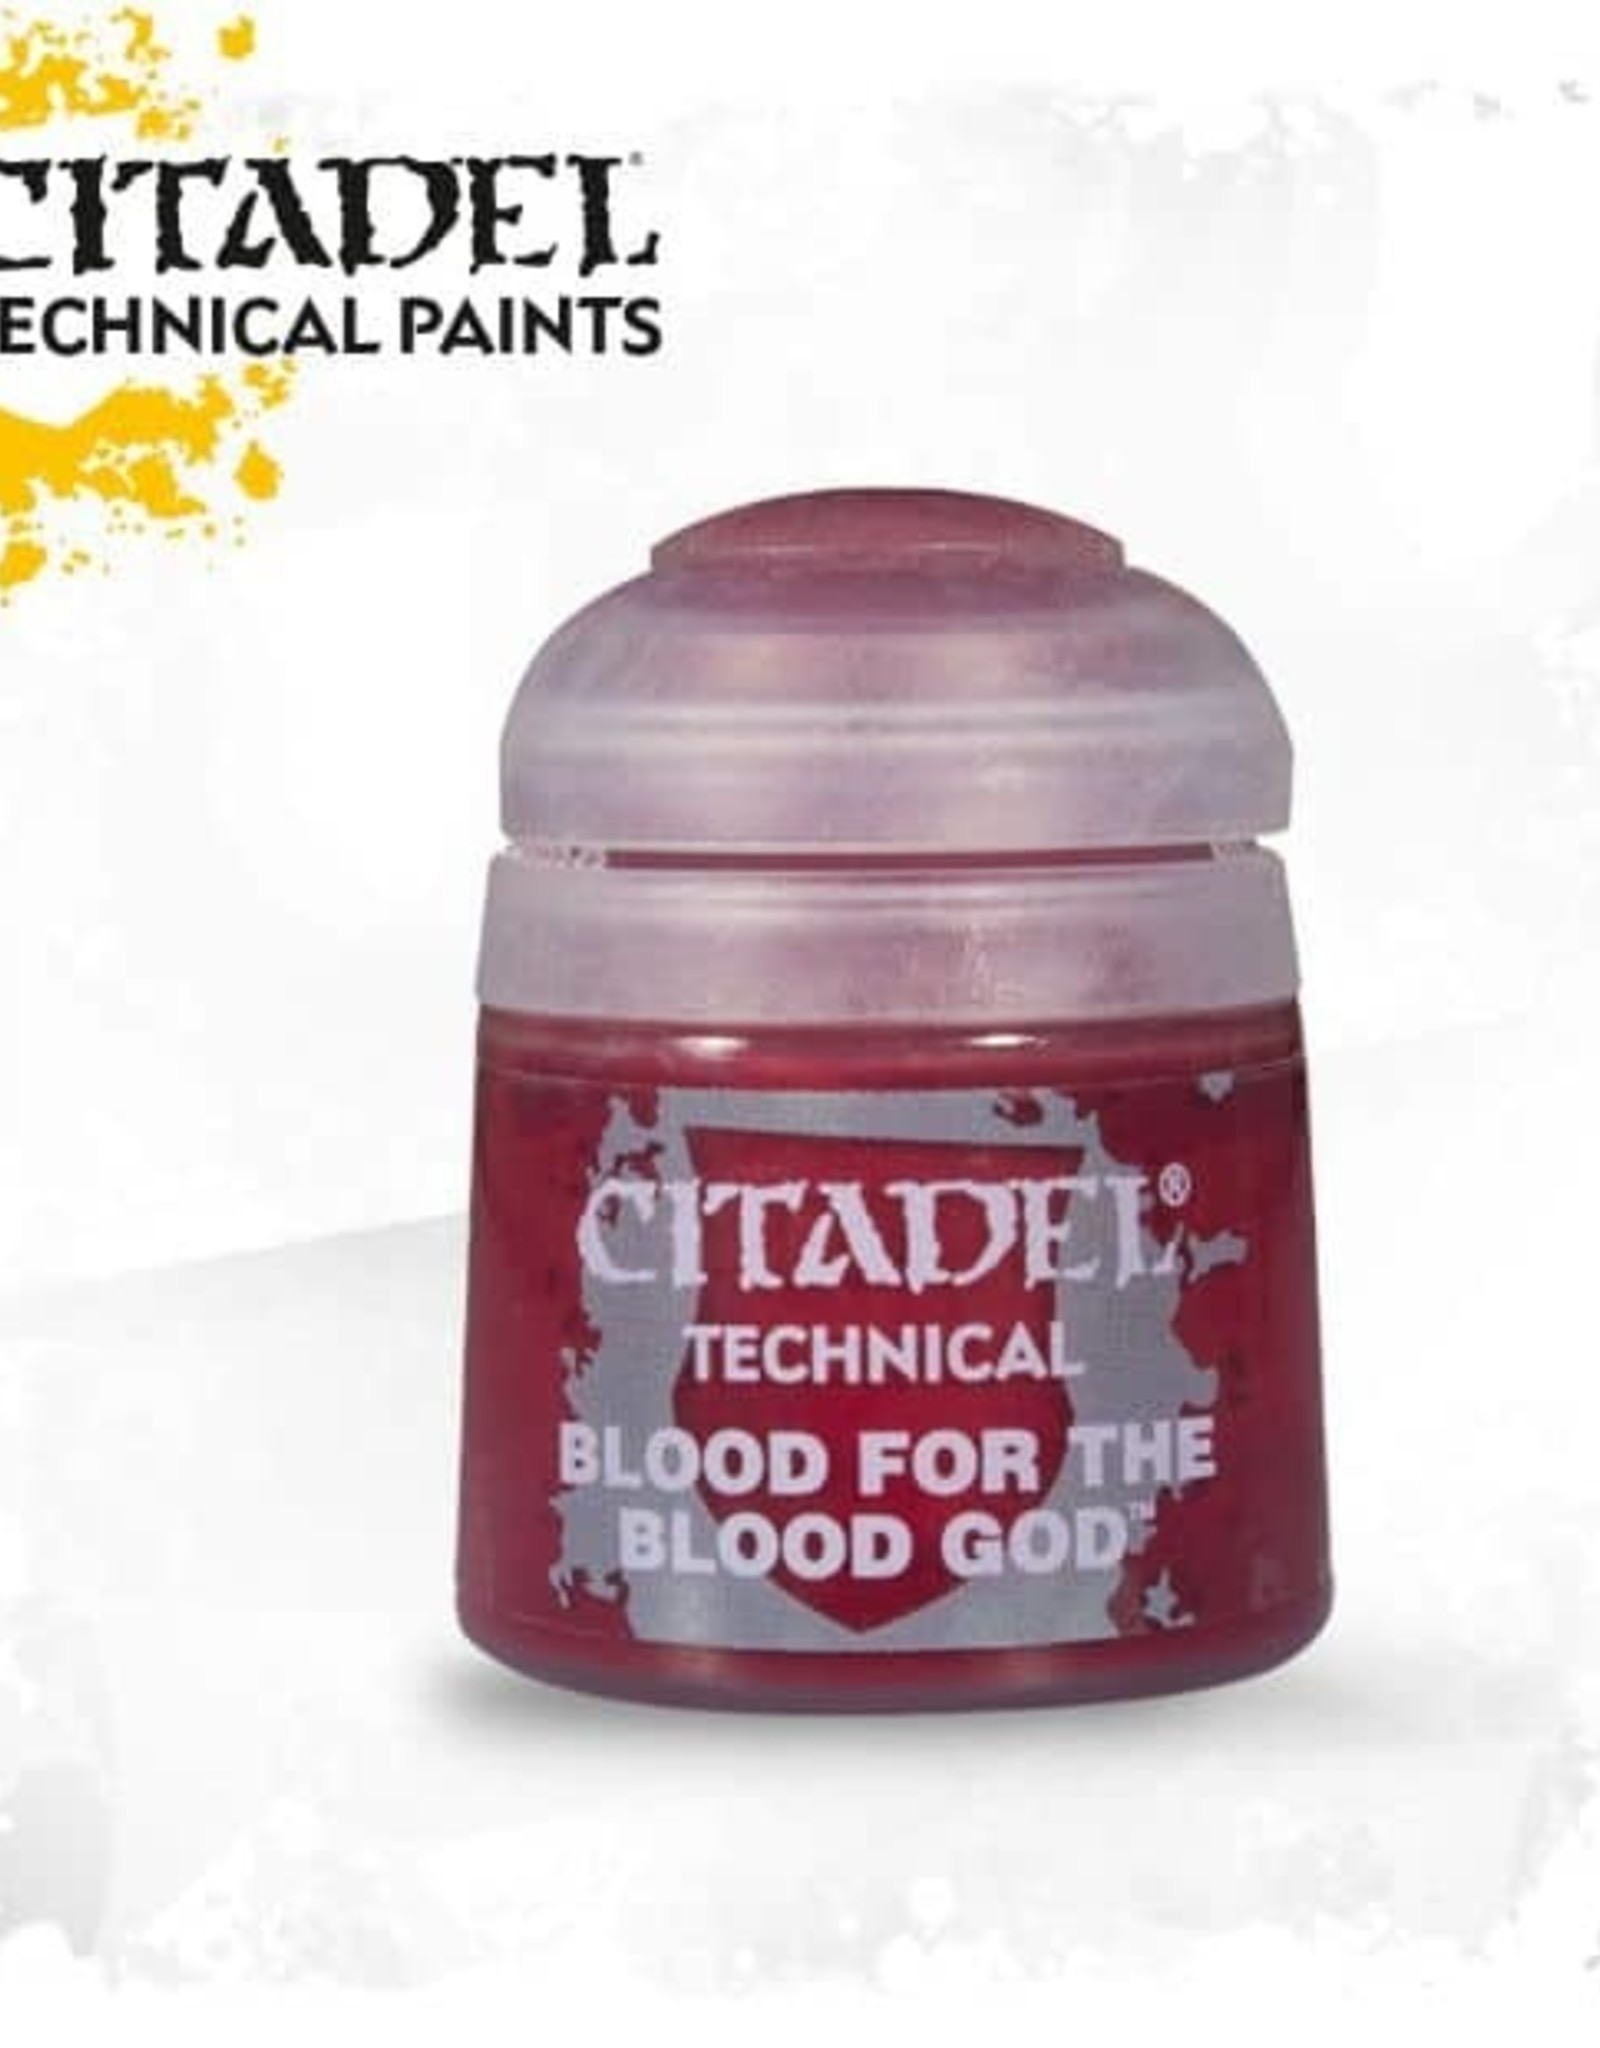 Games Workshop Technical Paint: Blood for the Blood God